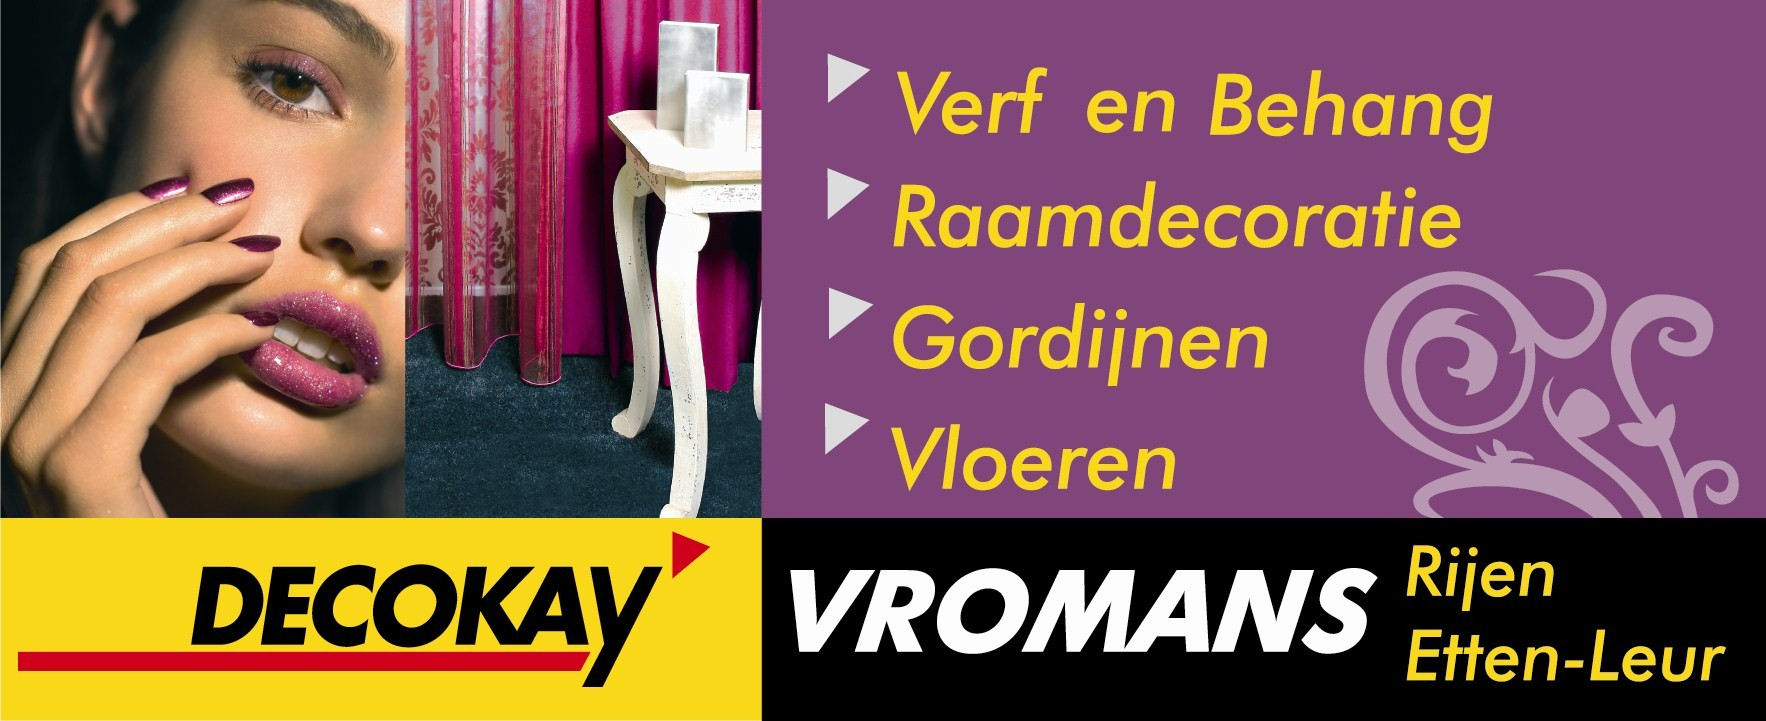 Logo Decokay Vromans